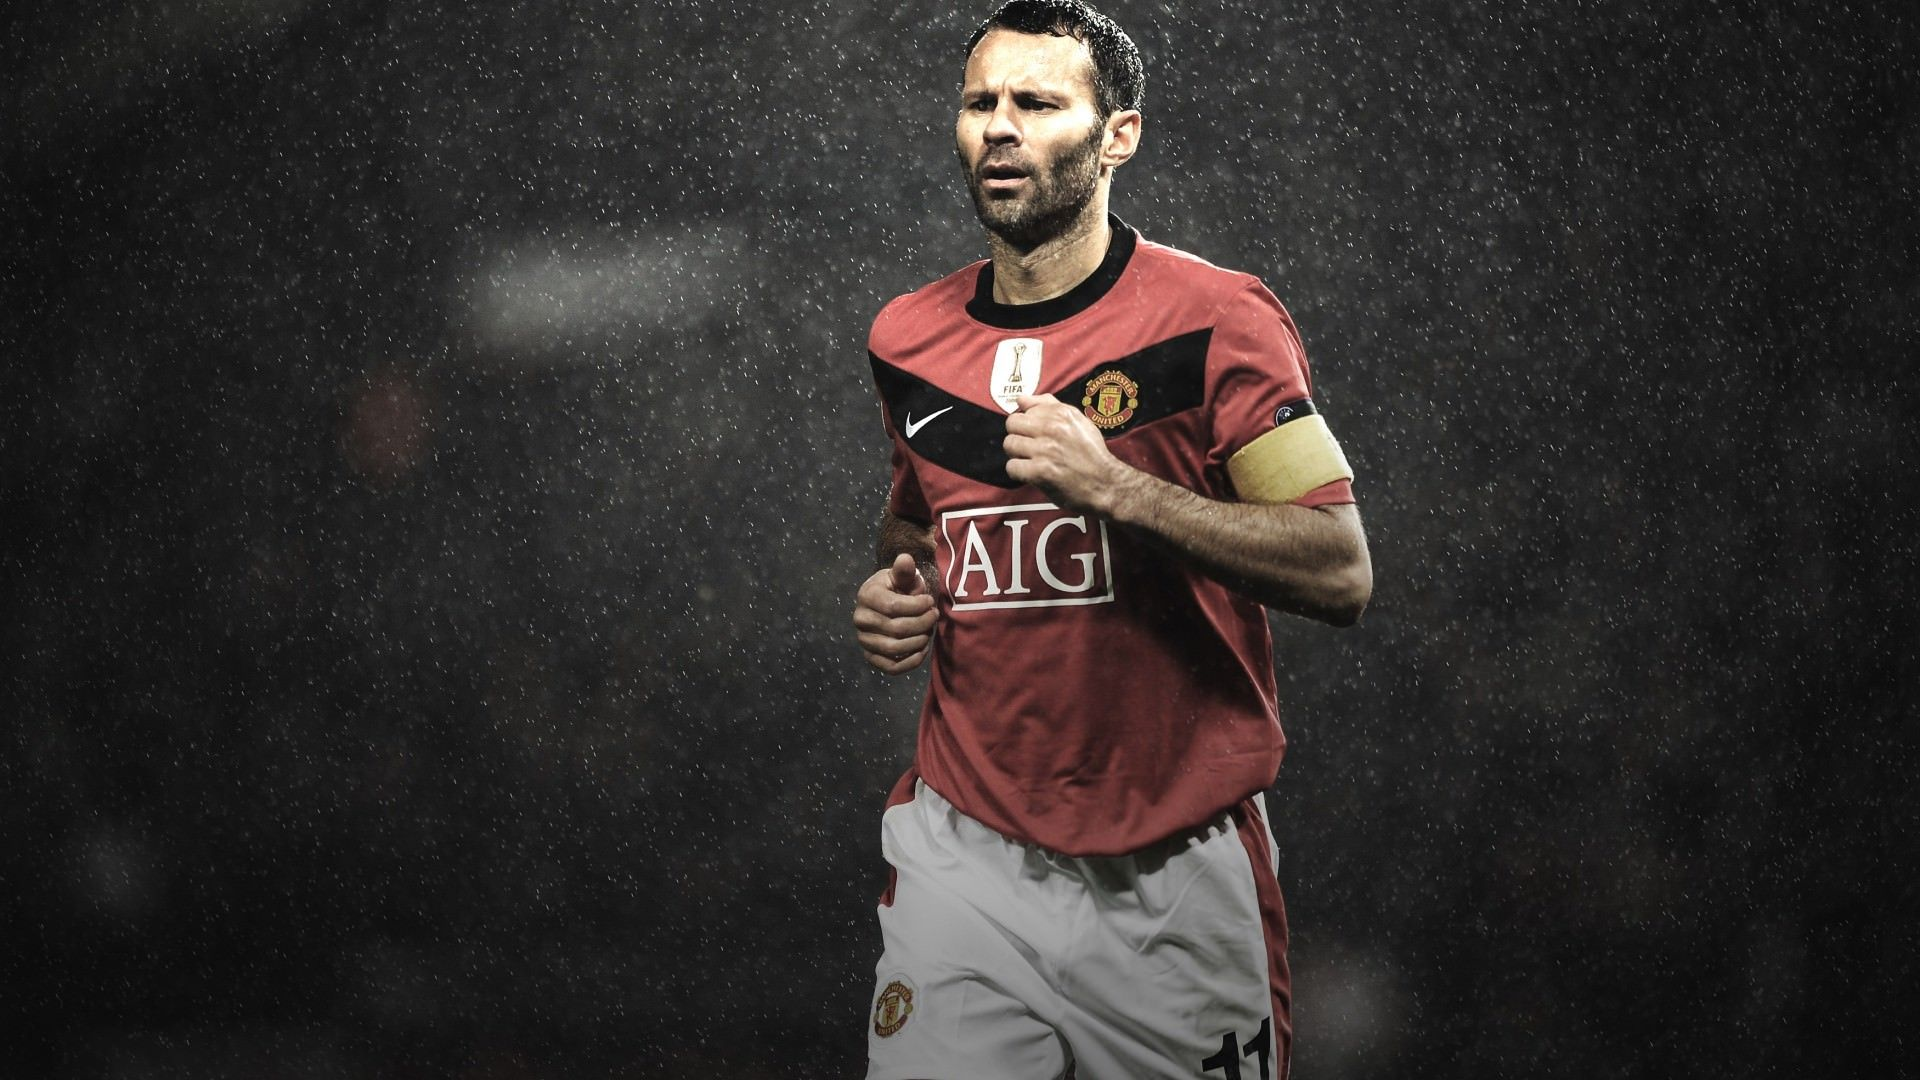 Ryan Giggs Manchester United Legend Wallpaper Football Wallpapers Hd Manchester United Legends Manchester United Football Wallpaper